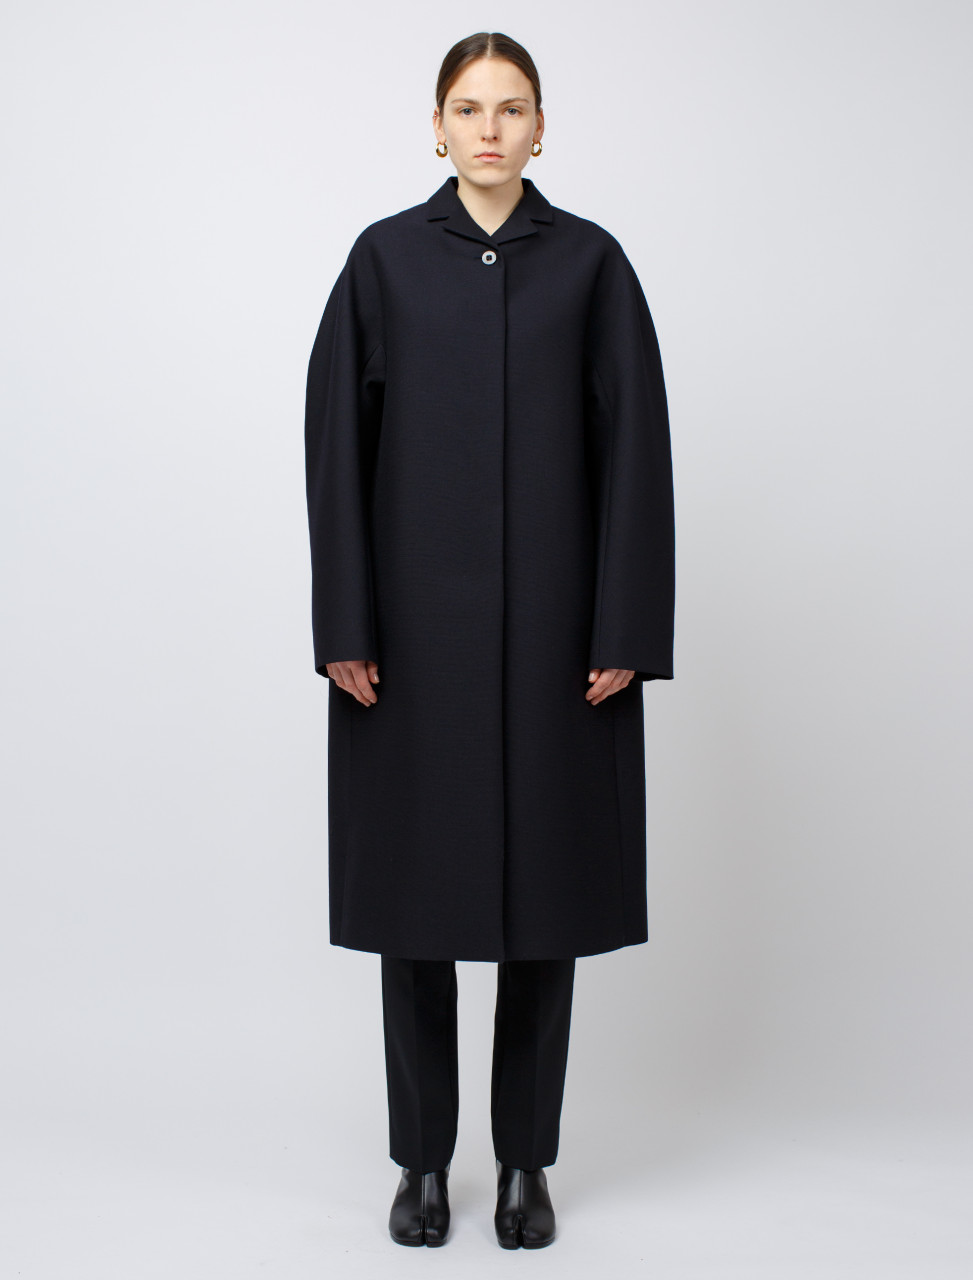 Deconstructed Coat in Dark Blue